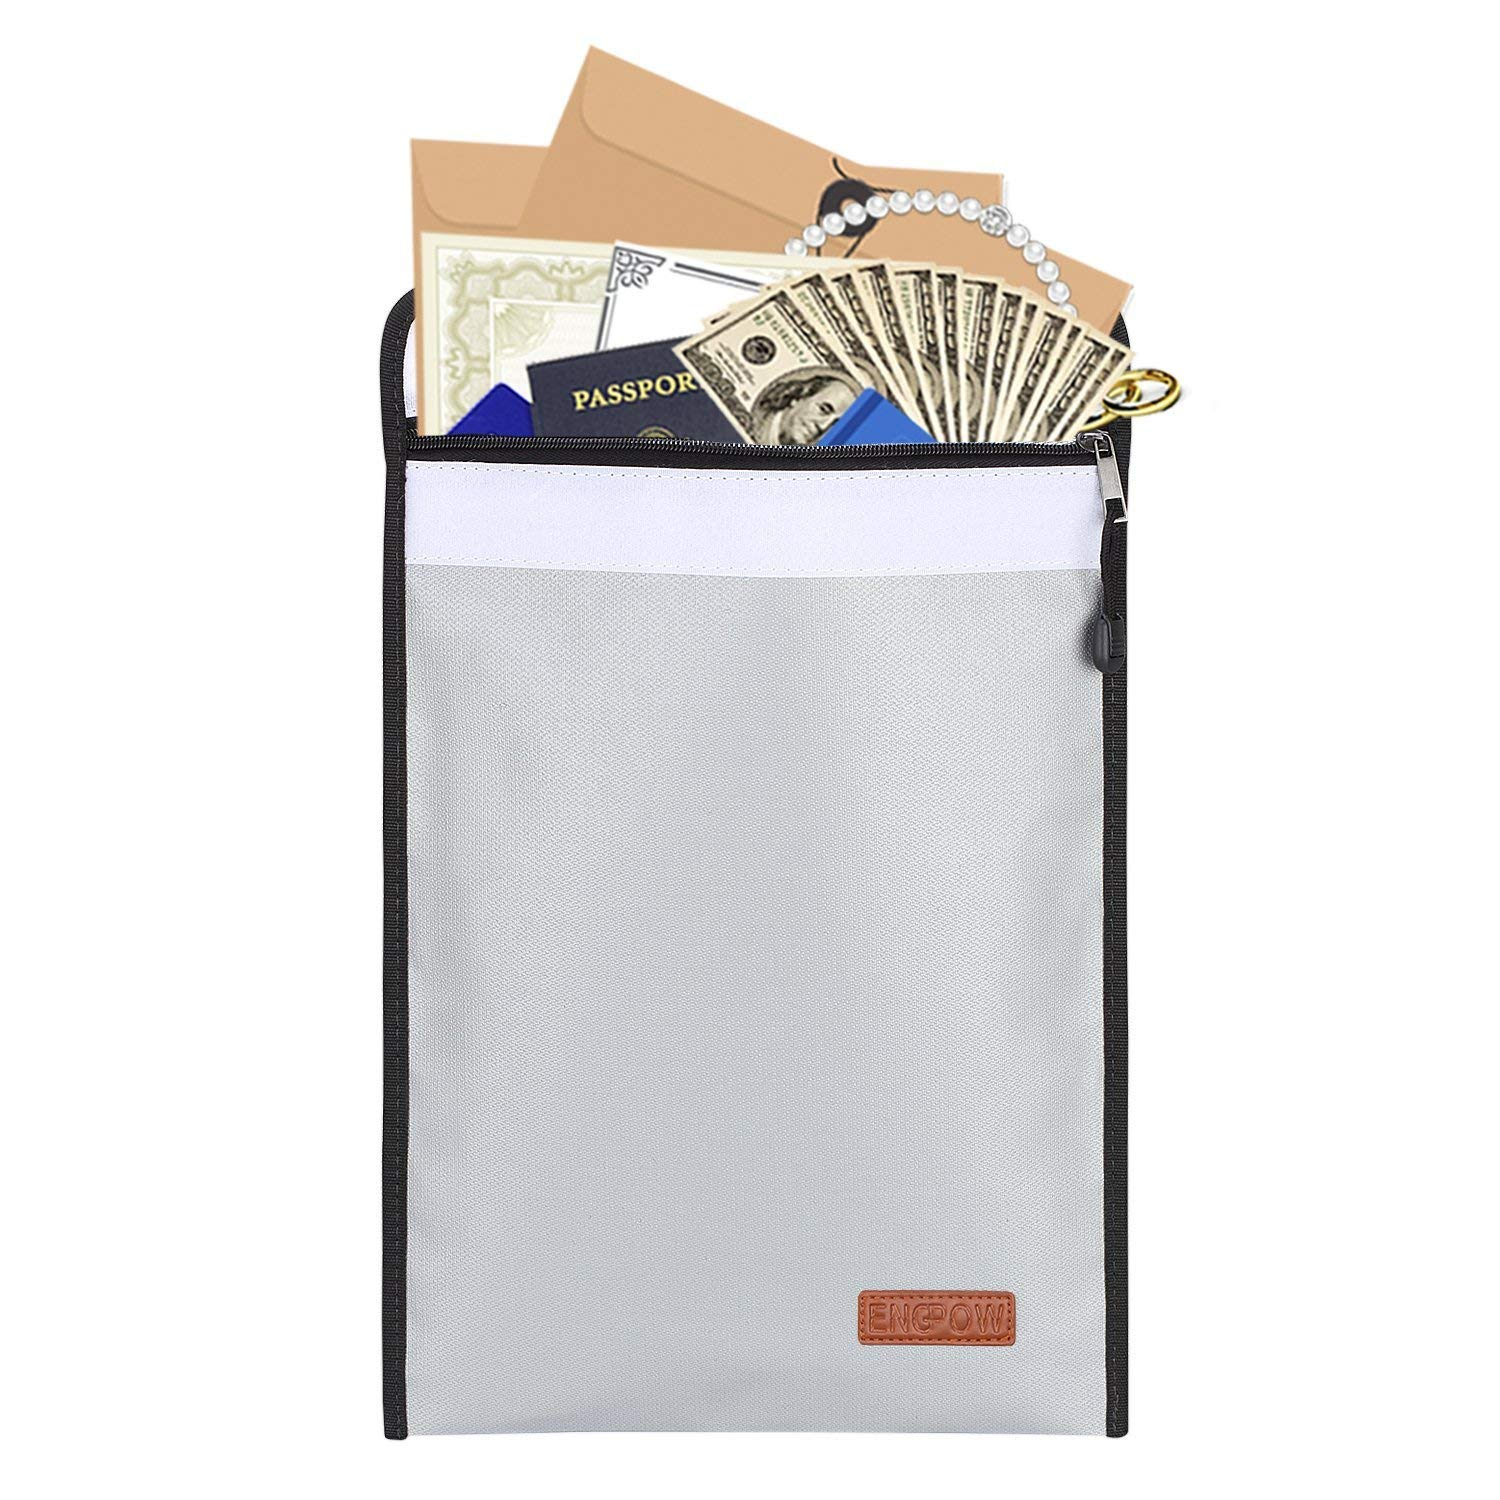 Fireproof Bag (11x15inch) ENGPOW Non-Itchy Silicone Coated Fire Resistant Money Bag Fireproof Safe Storage for Money,Documents,Laptop,Jewelry and Passport (Gray)